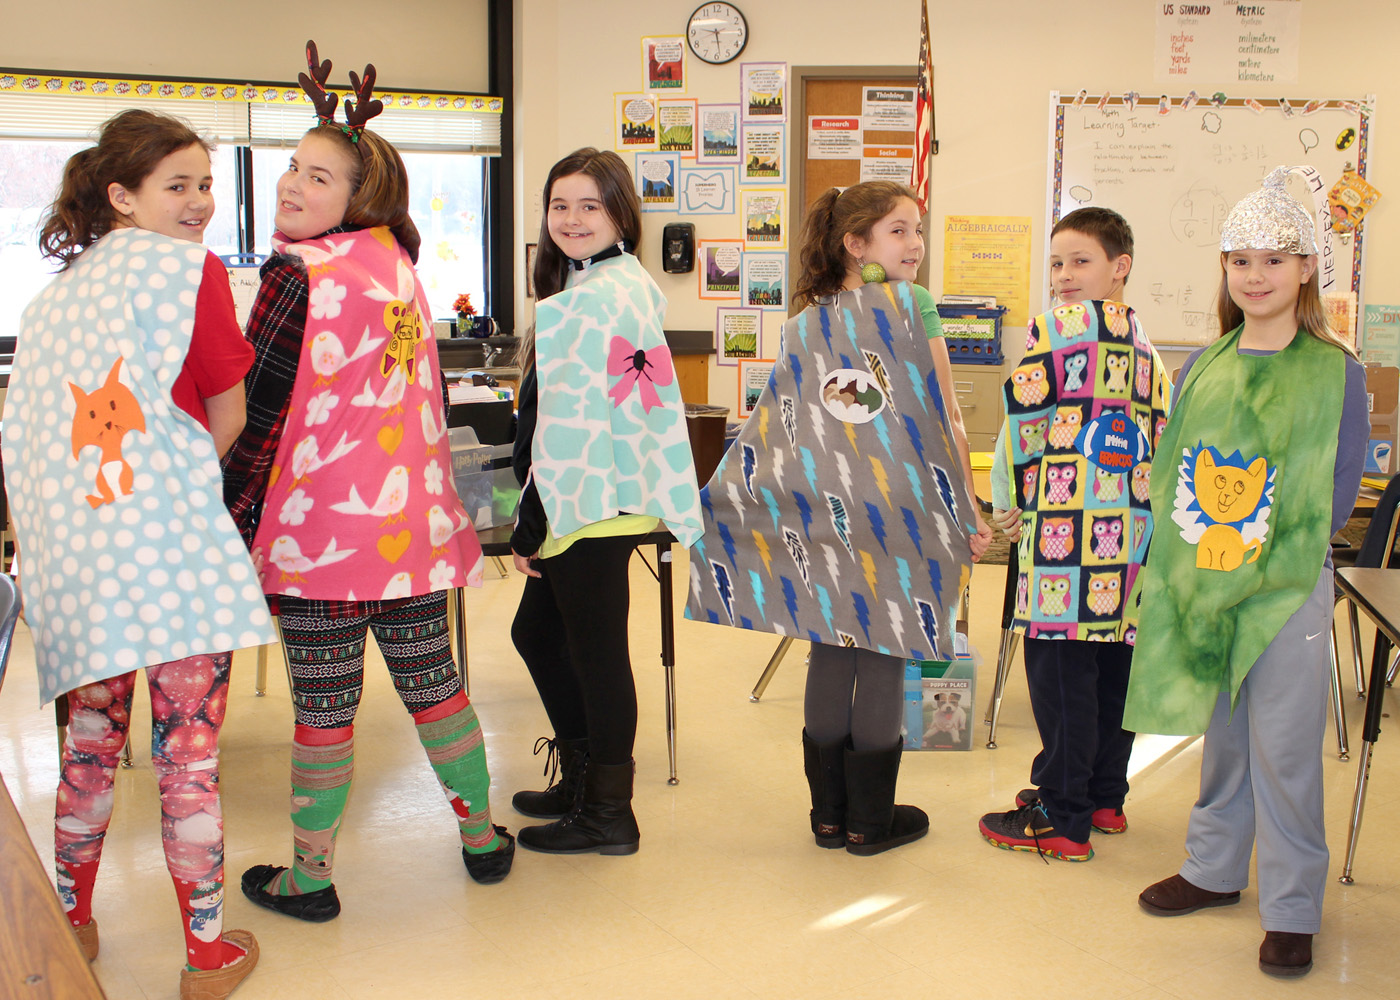 Shown l-r, Gianna DiPiazza, Julia DiPaola, Grace Ross, Libby Booth, Brady Graupman and Olivia Rist, all fifth graders at Northwood Elementary School in Hilton, model the capes they made for The Hero Project at Peyton Manning Children's Hospital for St. Vincent in Indianapolis. Provided photo